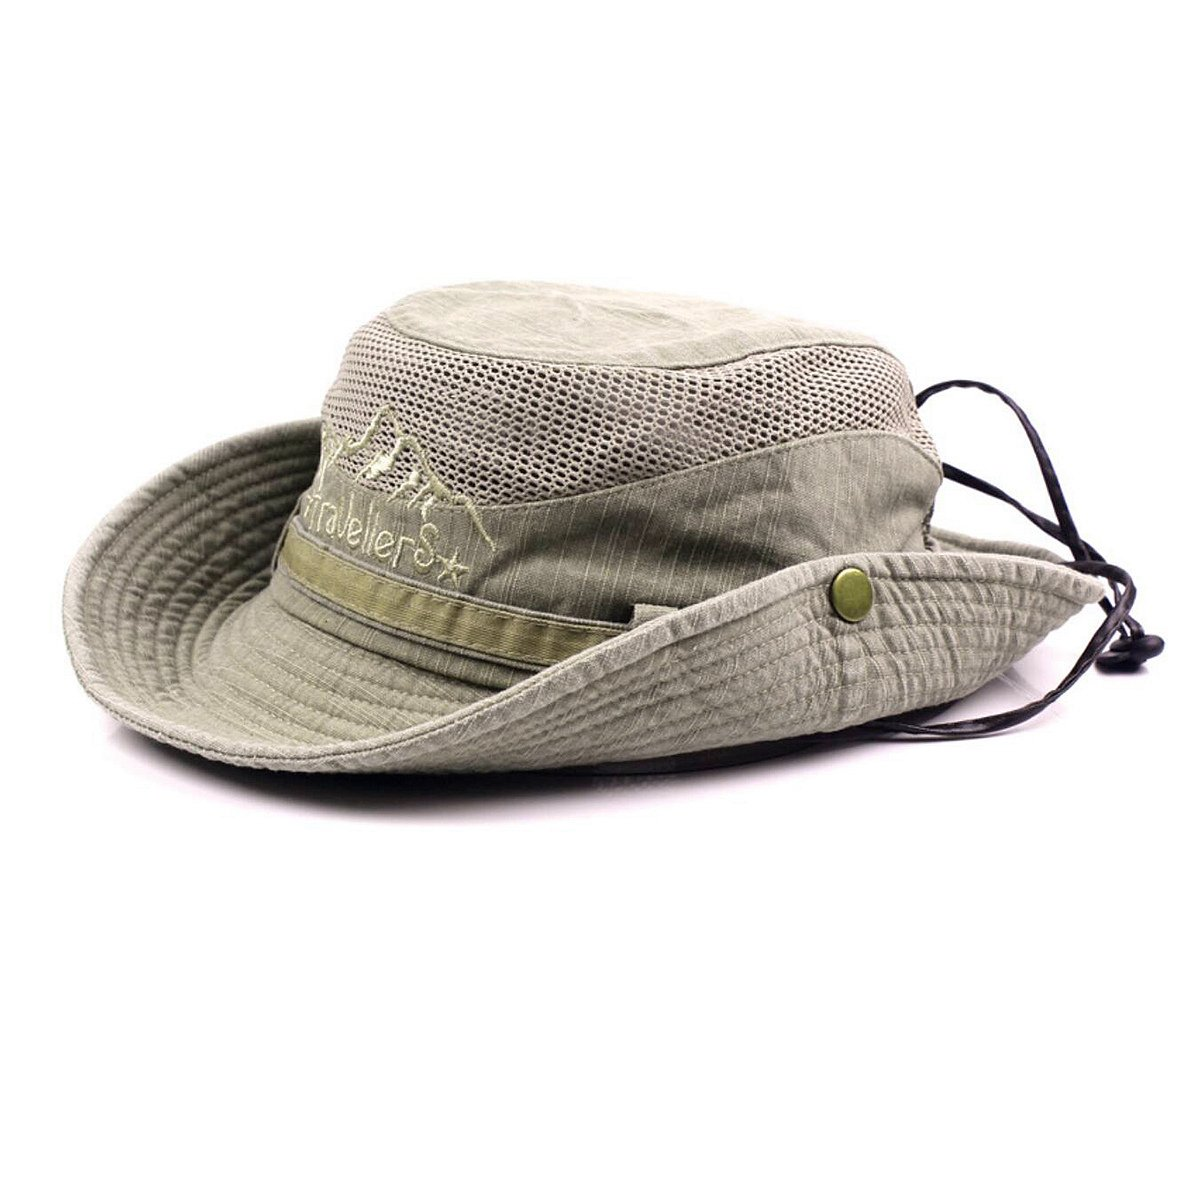 KeepSa Sun Hat for Men, Cotton Embroidery Summer Outdoor Sun Protection Wide Brim Bucket Hat Foldable Safari Boonie Hat